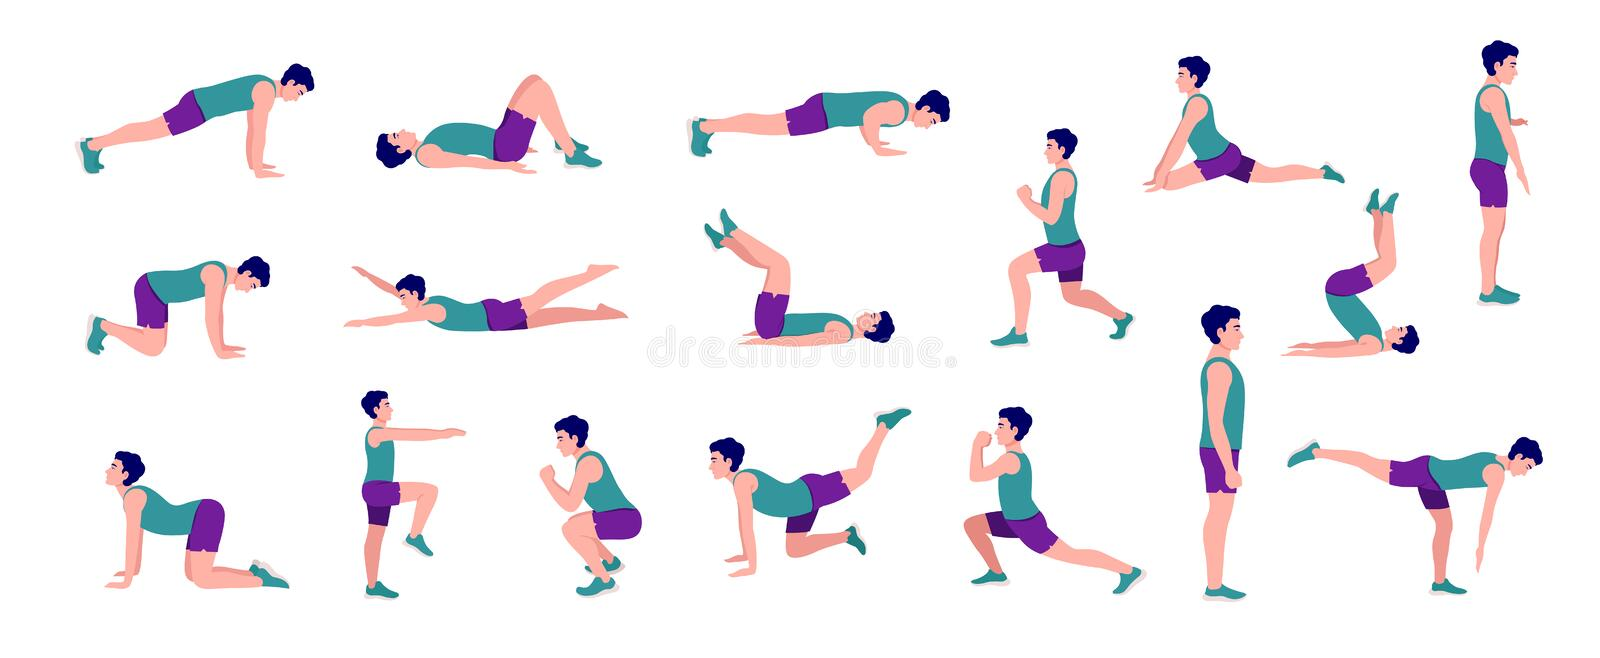 Workout Men set. Men doing fitness and yoga exercises. Lunges and squats, plank,Push Up,Mountain Climber, V-up,Bird Dog, Crunches and abc. Full body workout stock illustration